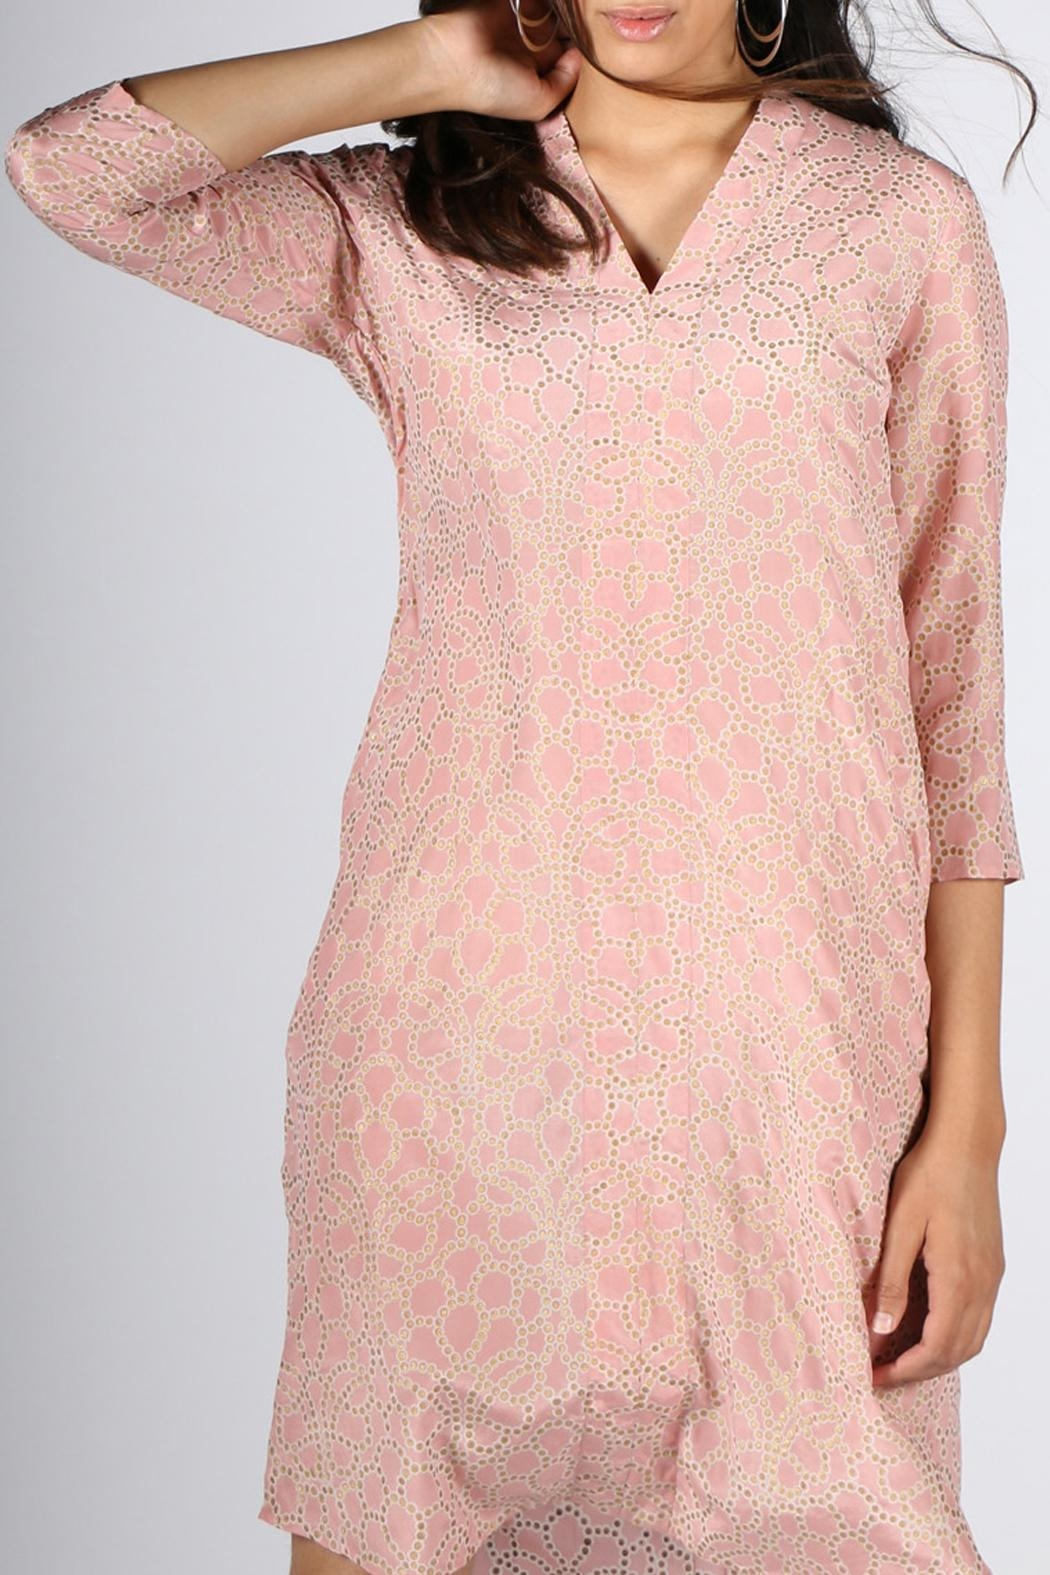 Rasa Leela Rose Dress - Side Cropped Image